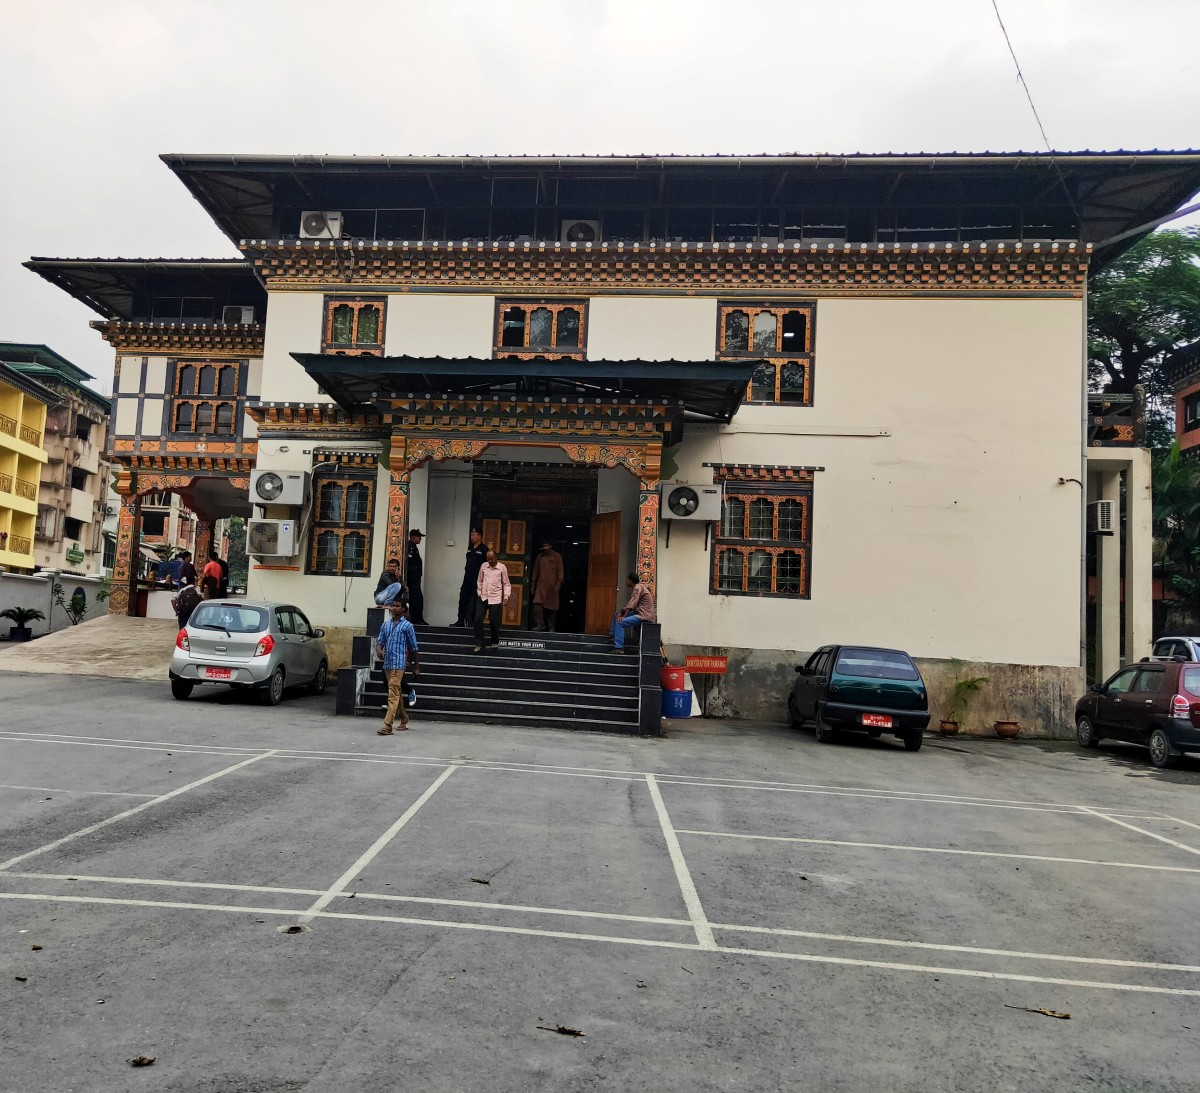 Immigration Office remains closed on Saturday and Sunday and on other Bhutanese holidays.  Indians can enter Phuentsholing without permission; however, they need to seek permission from the Immigration Office in Phuentsholing to travel beyond it.